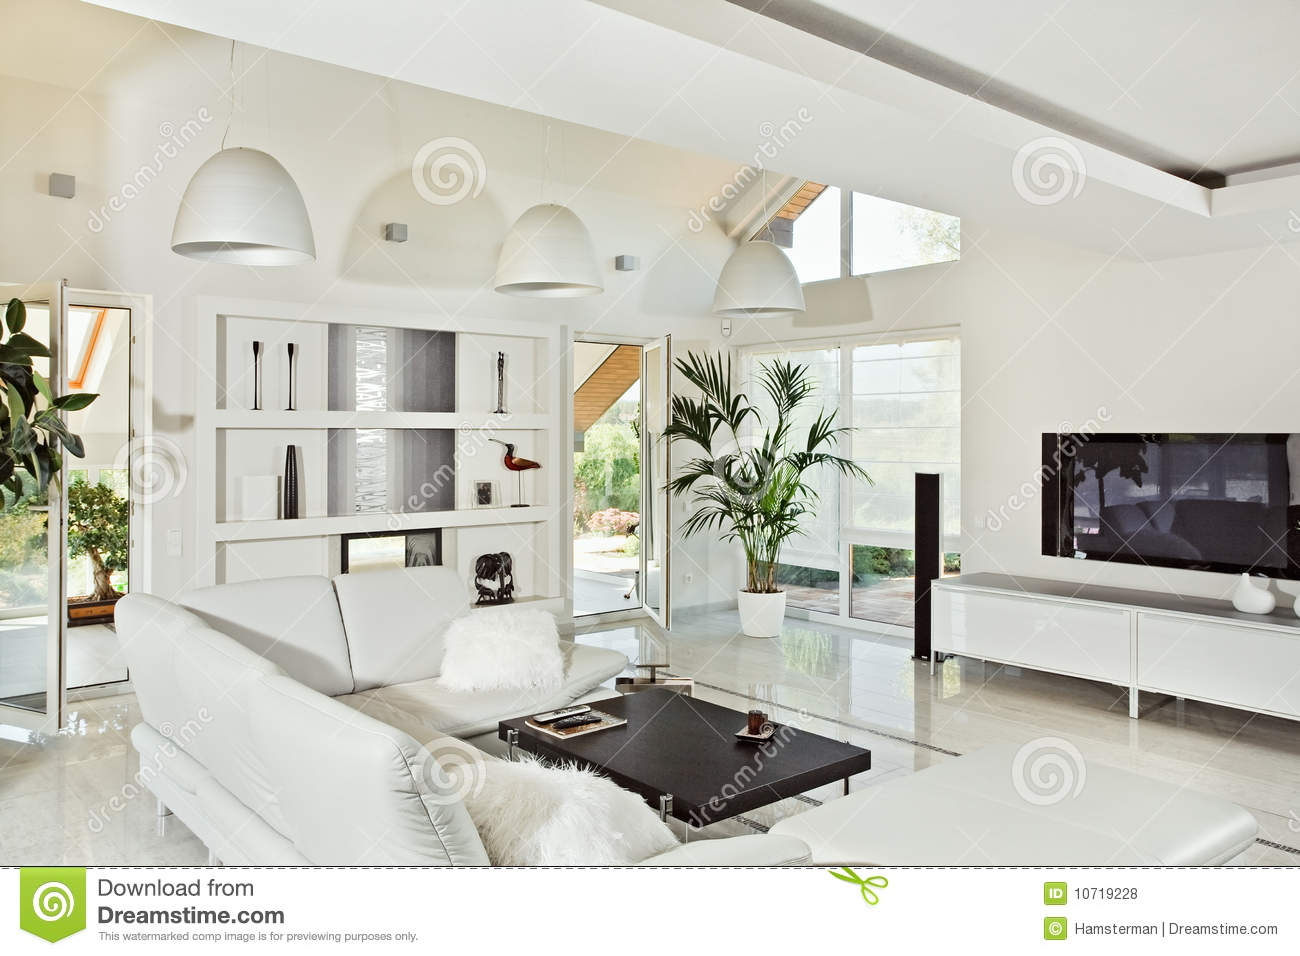 Snow White Living Room Modern Interior Royalty Free Stock